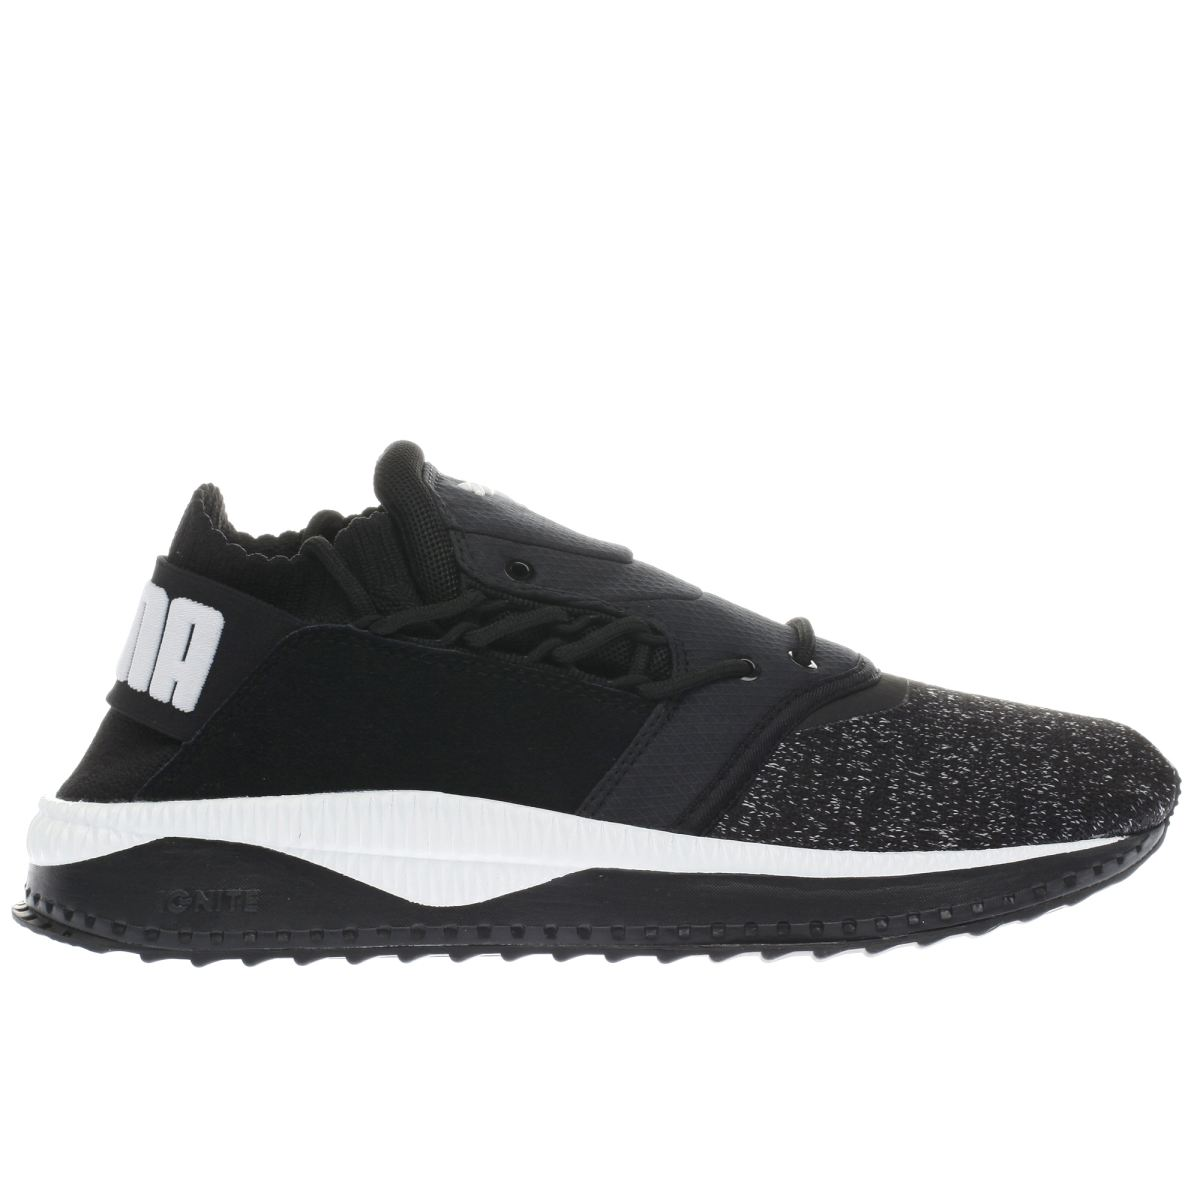 puma black tsugi shinsei nocturnal trainers